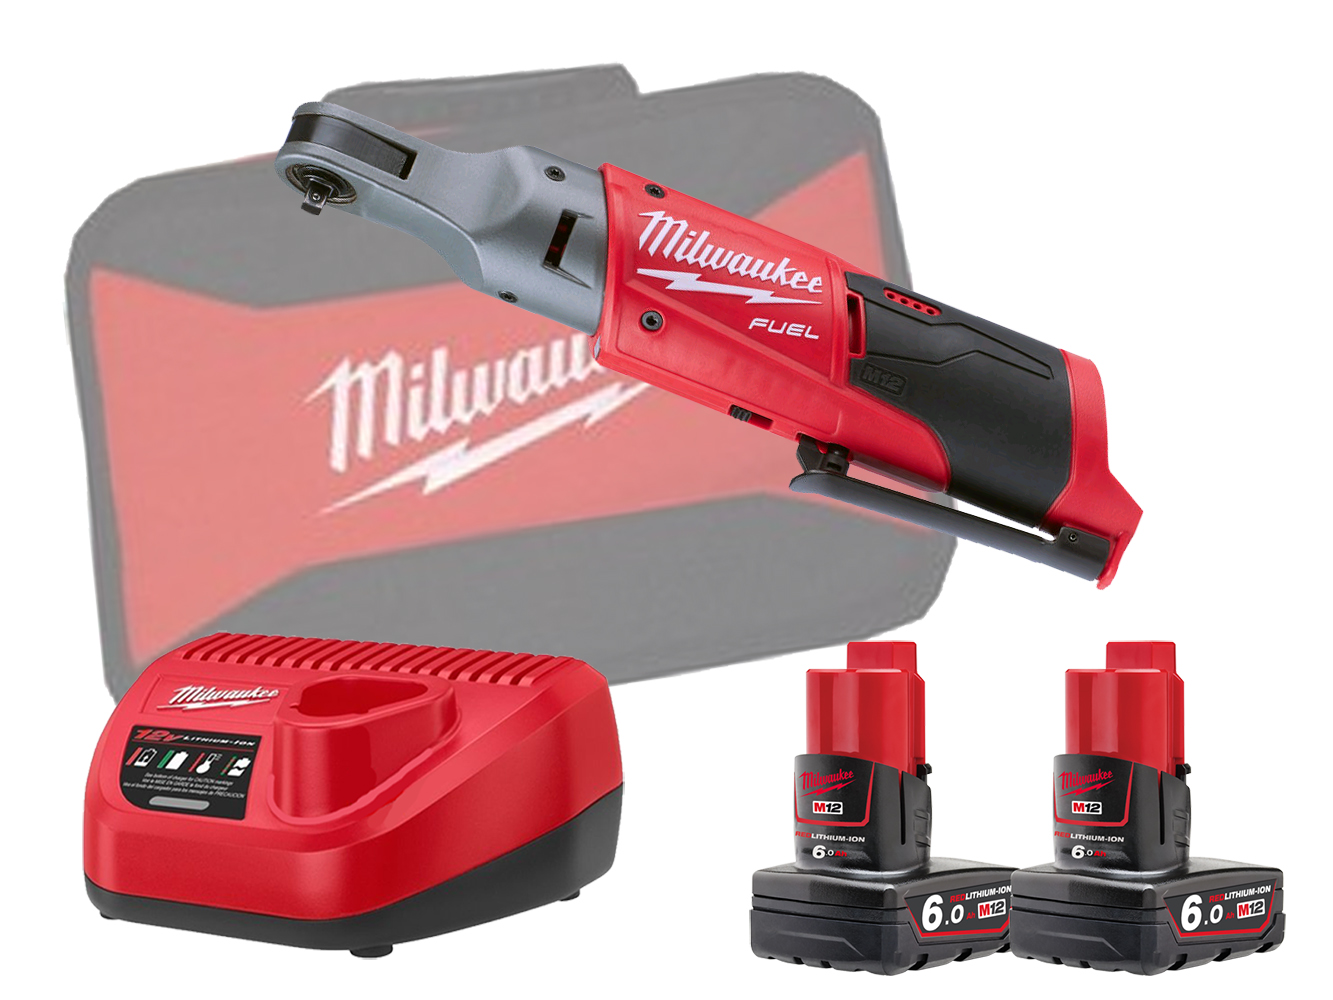 Milwaukee M12FIR14 12V Fuel Brushless 1/4In Impact Ratchet - 6.0Ah Pack